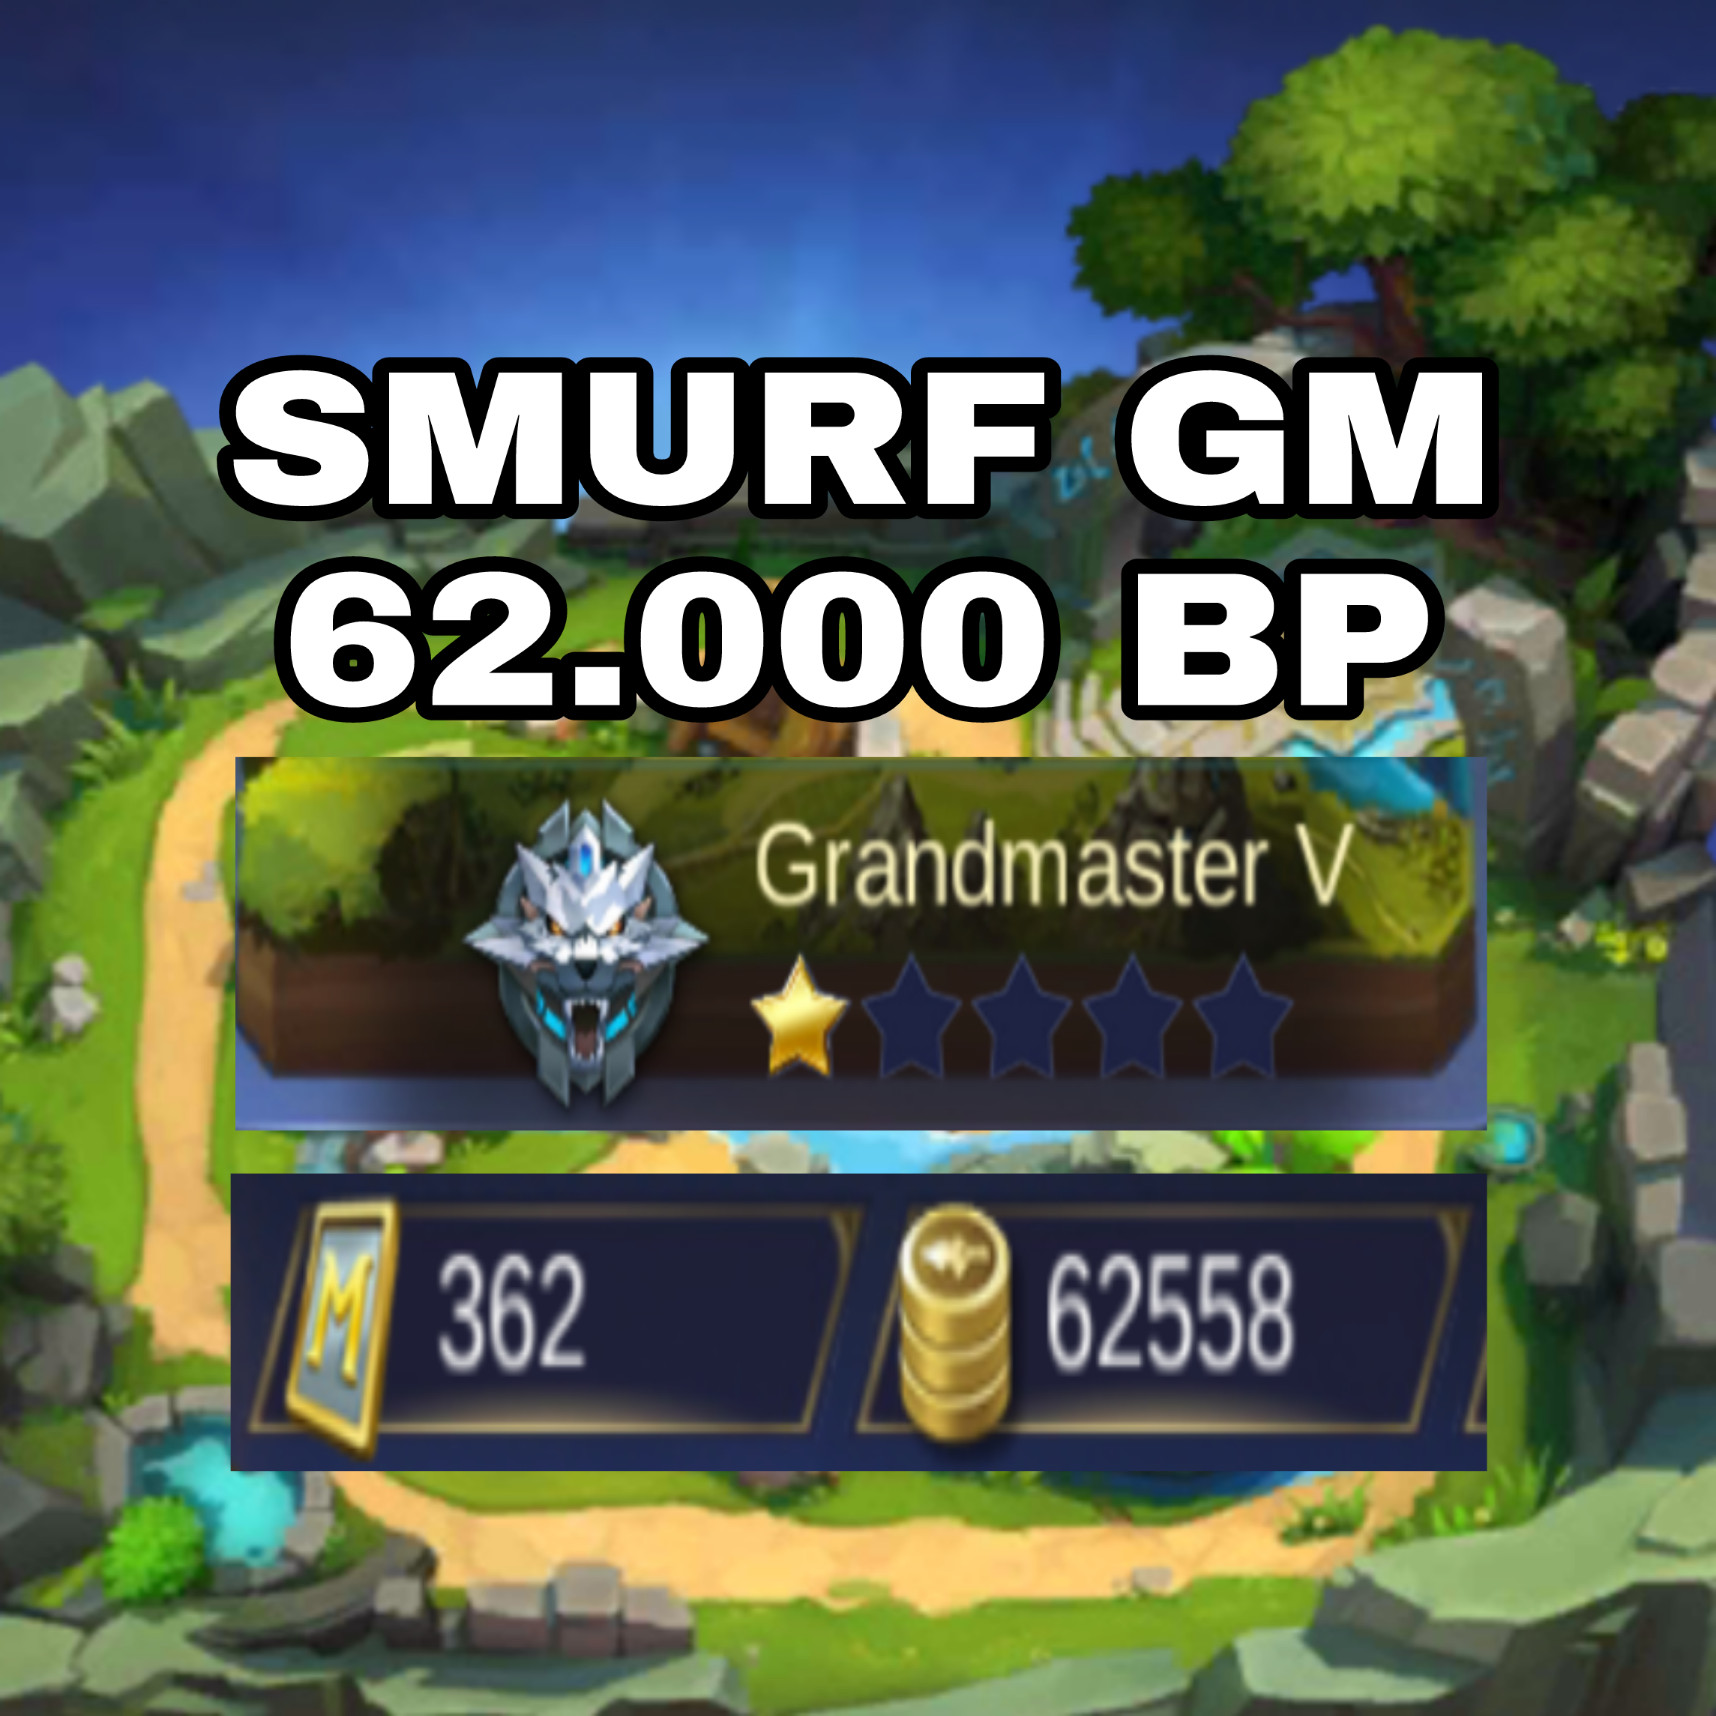 Smurf GM, BP Banyak, Hero Epic, Sultan